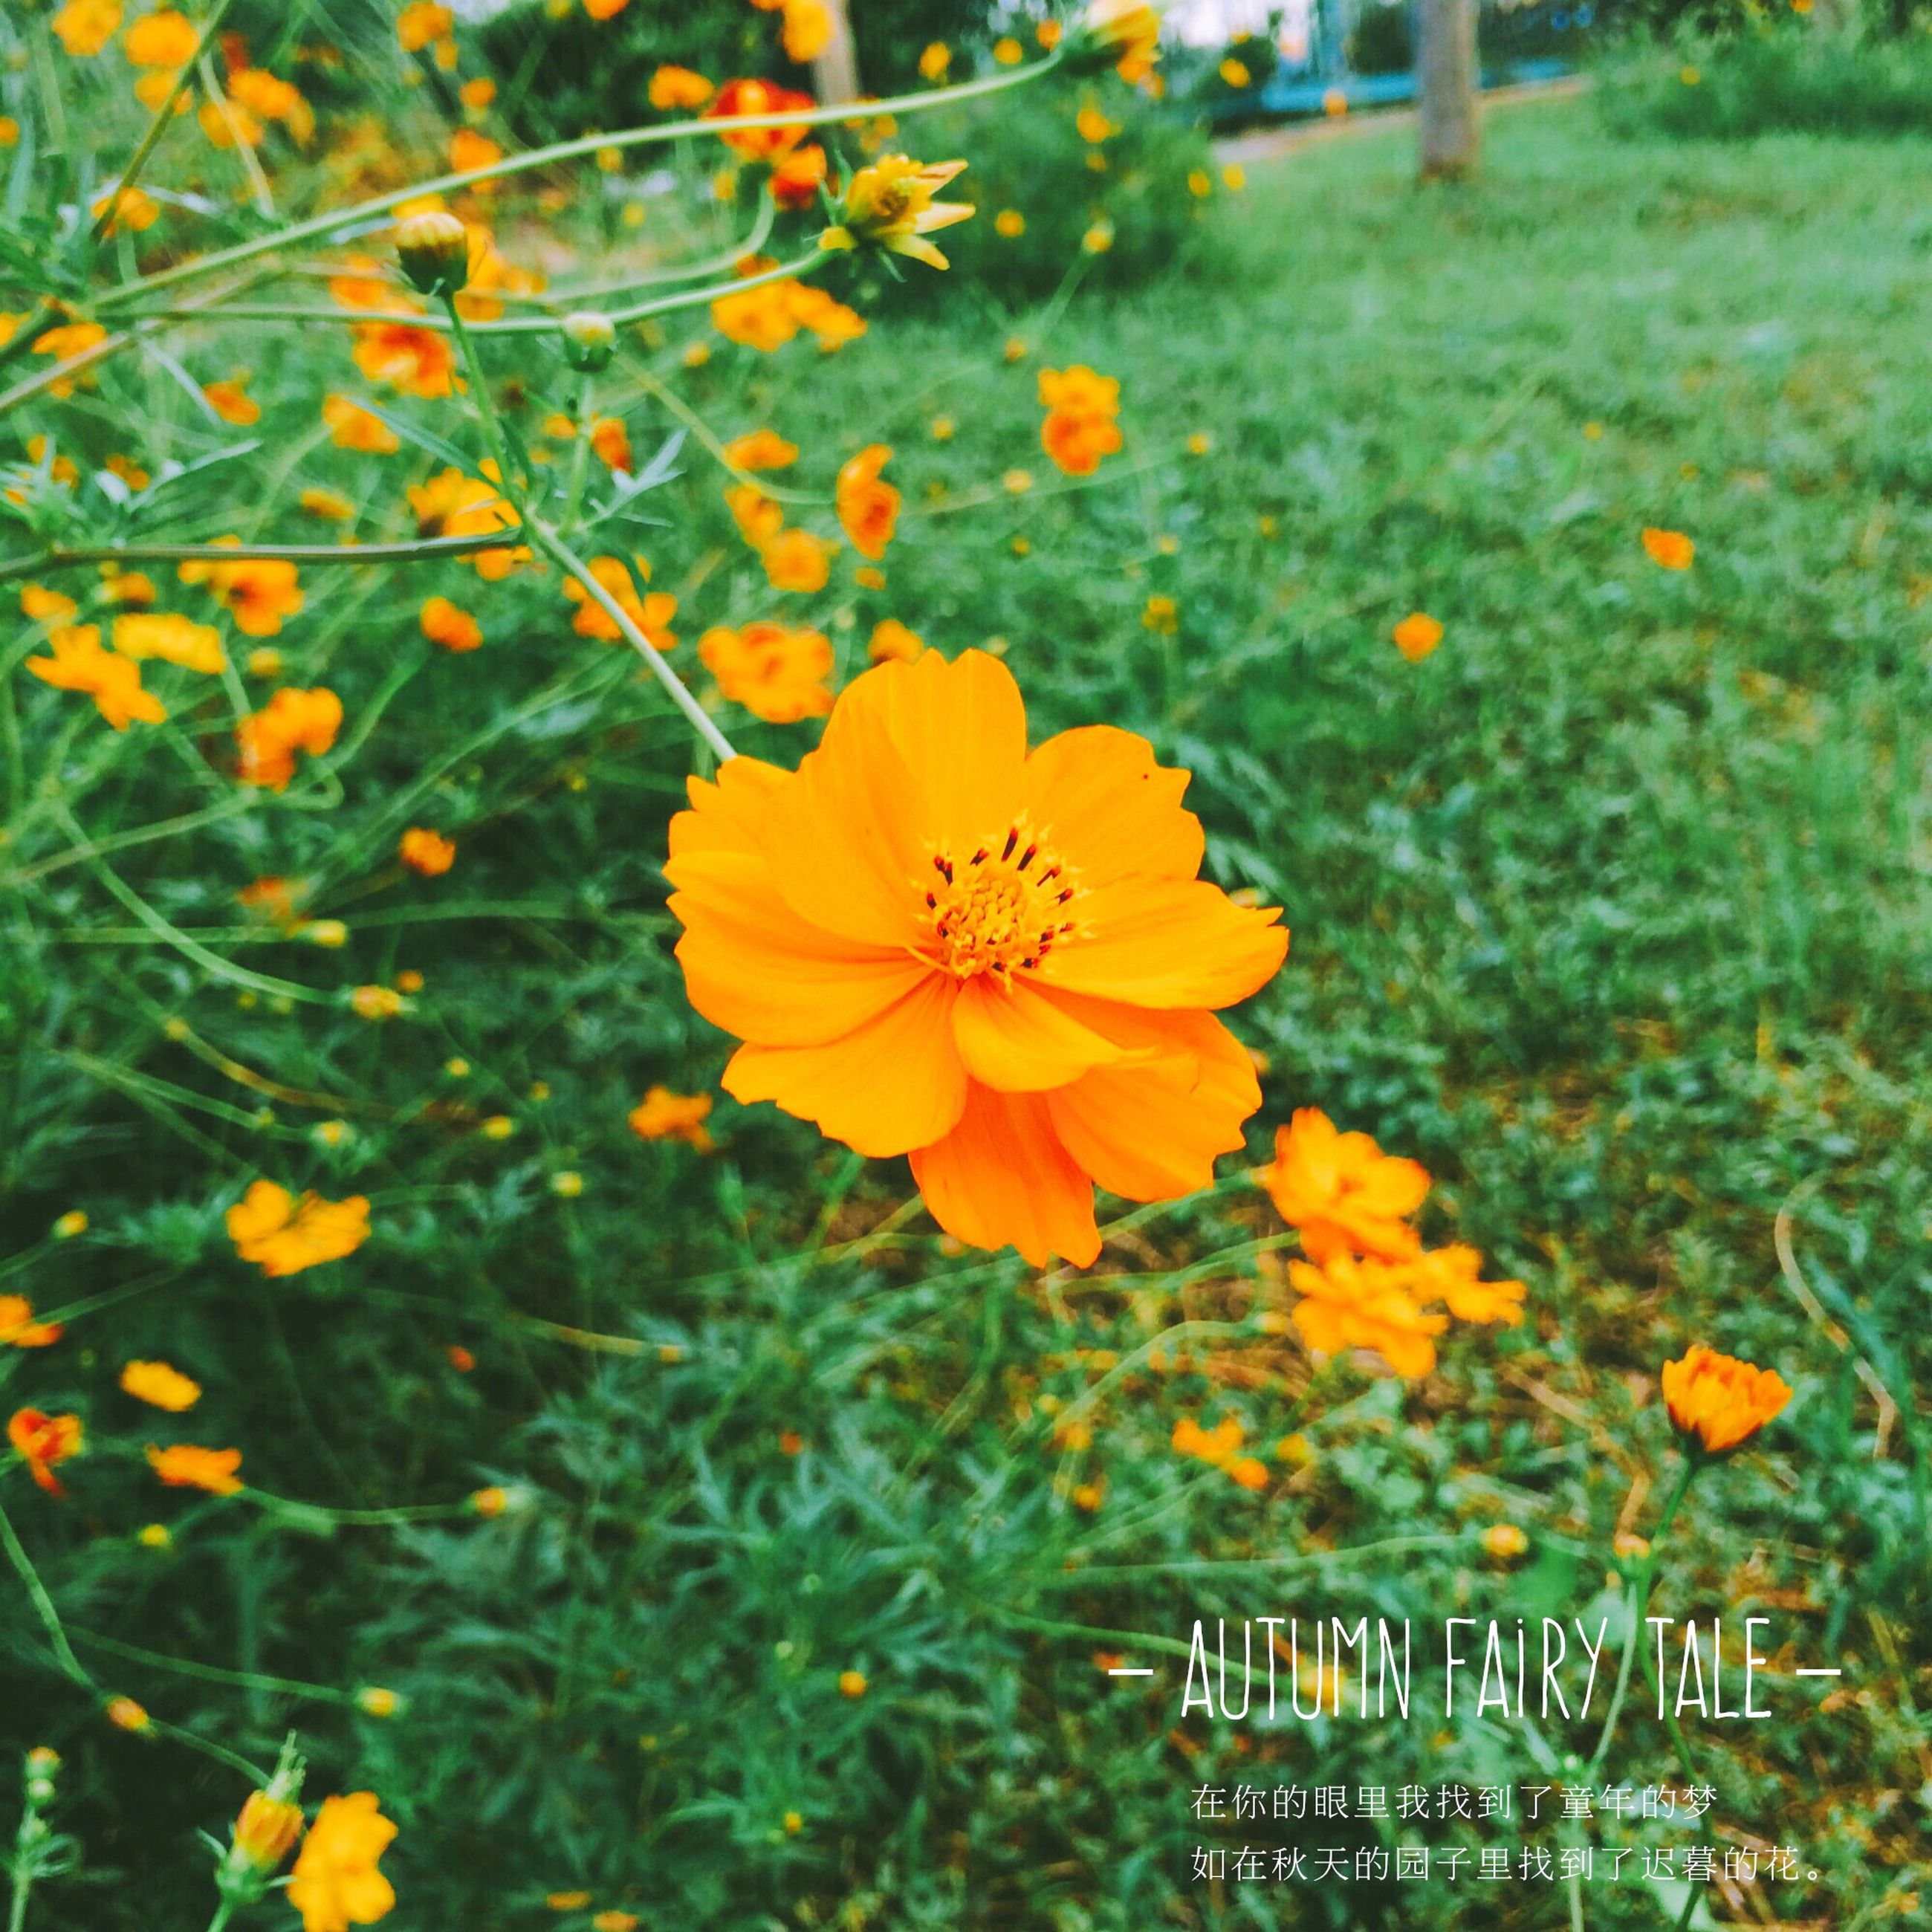 flower, freshness, petal, fragility, flower head, growth, beauty in nature, yellow, close-up, focus on foreground, springtime, nature, in bloom, plant, orange color, blossom, blooming, vibrant color, day, outdoors, botany, green color, yellow color, scenics, no people, pollen